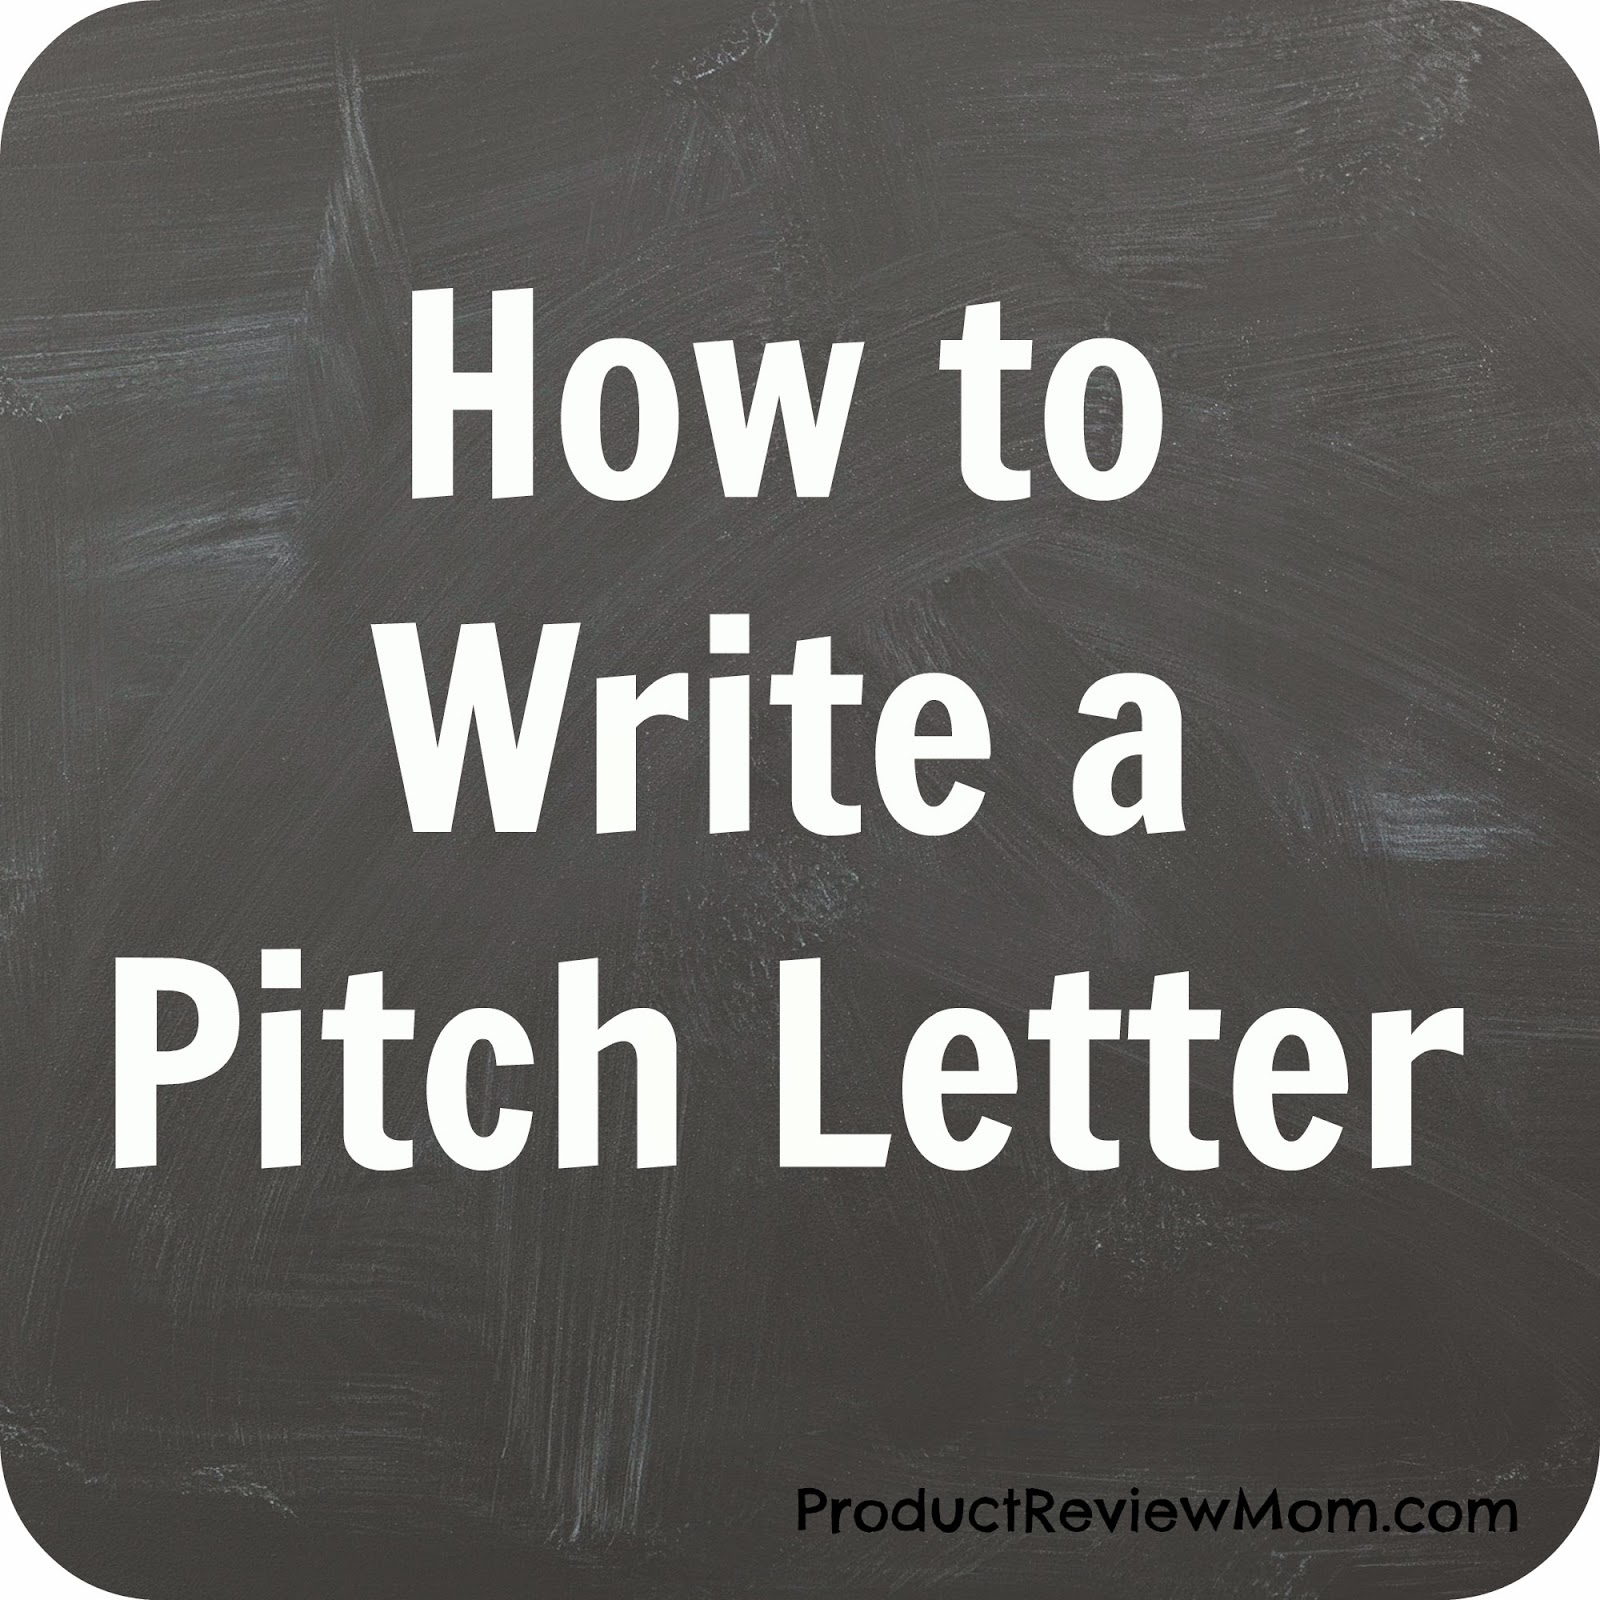 How to write a pitch letter for a product